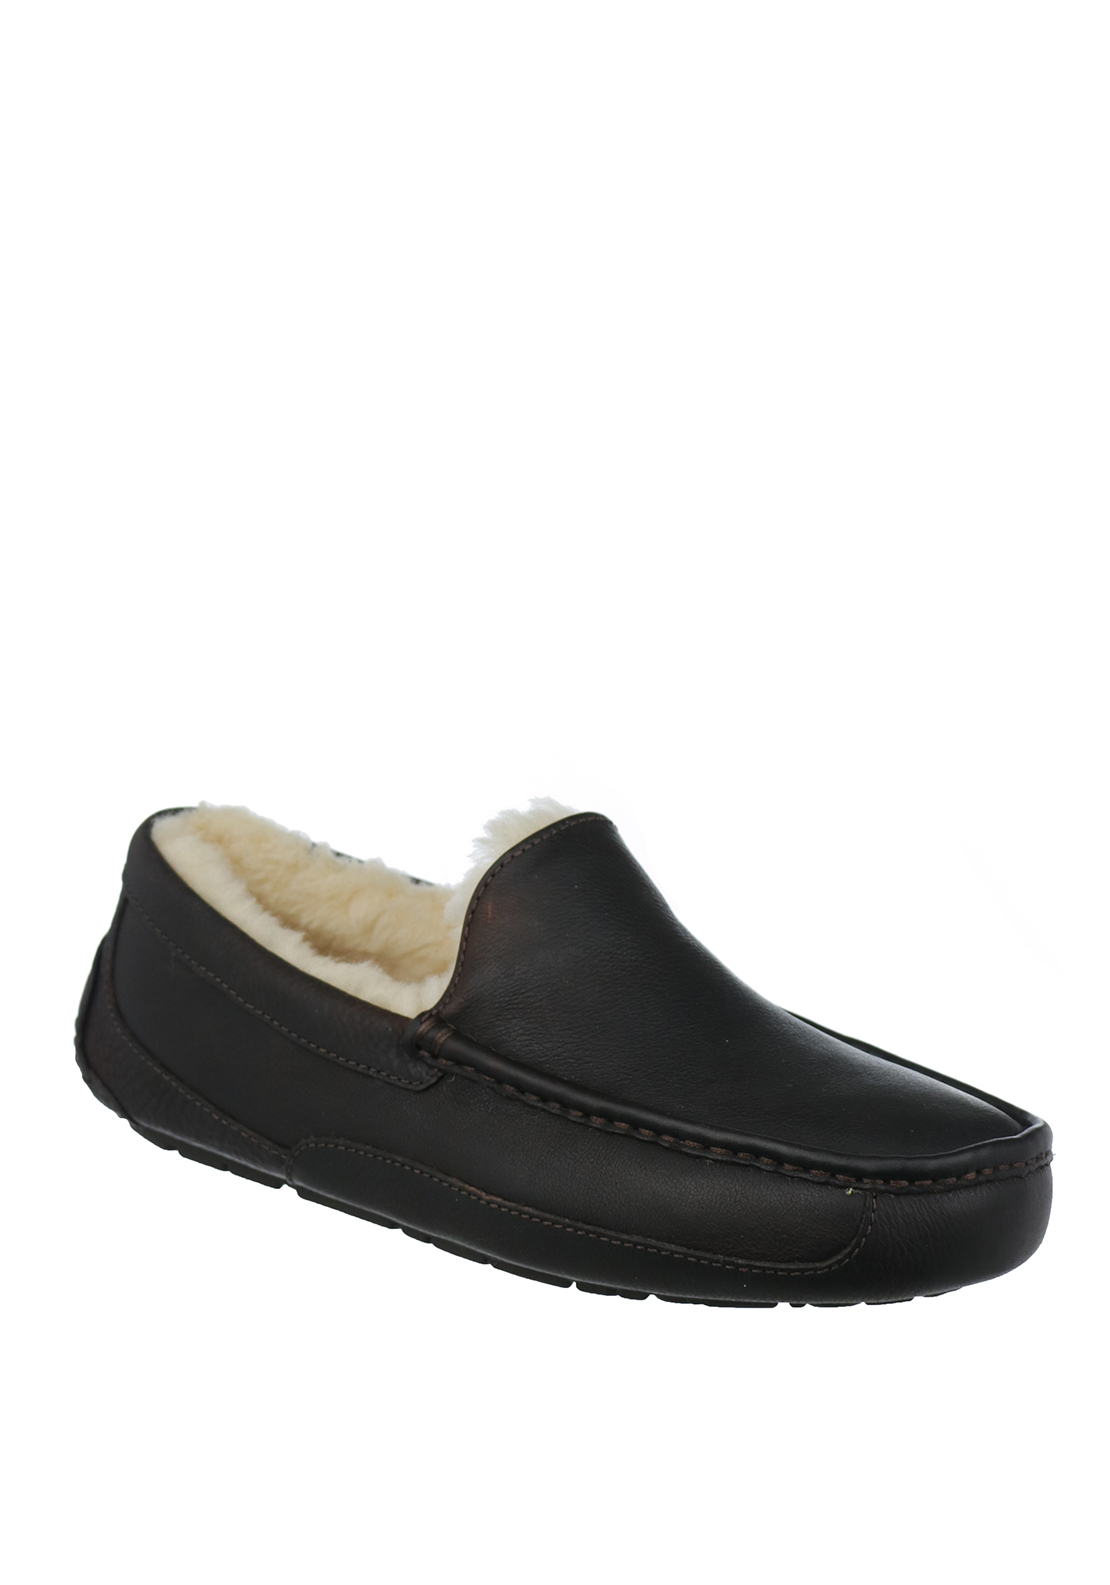 Ugg Australia Mens Ascot Leather Slippers, China Tea